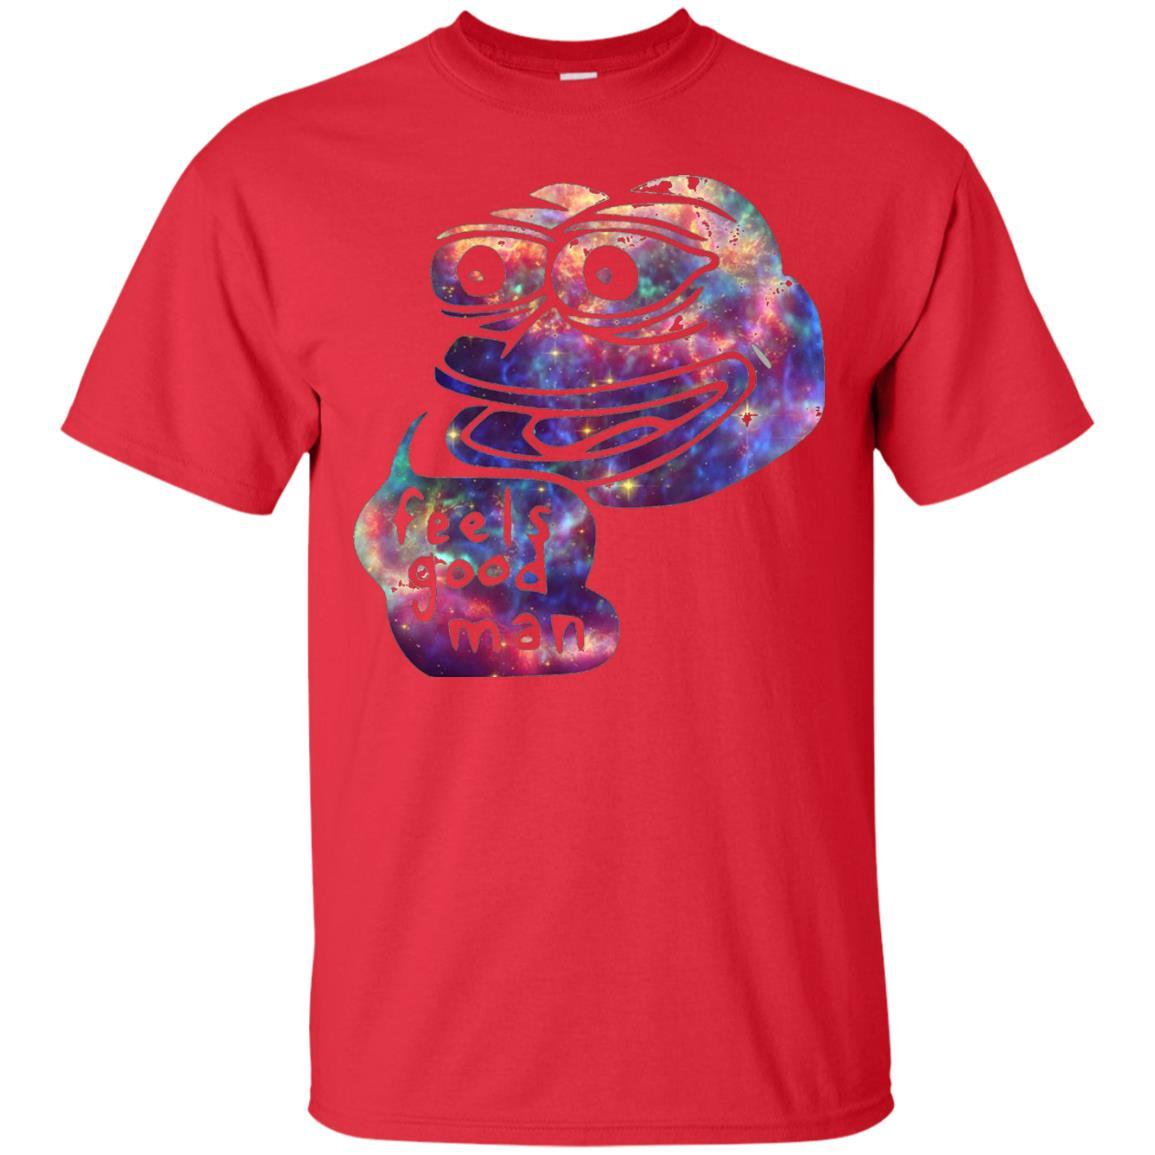 Rare Dank Meme Shirt Cosmic Galaxy Feels good Pepe T-Shirt